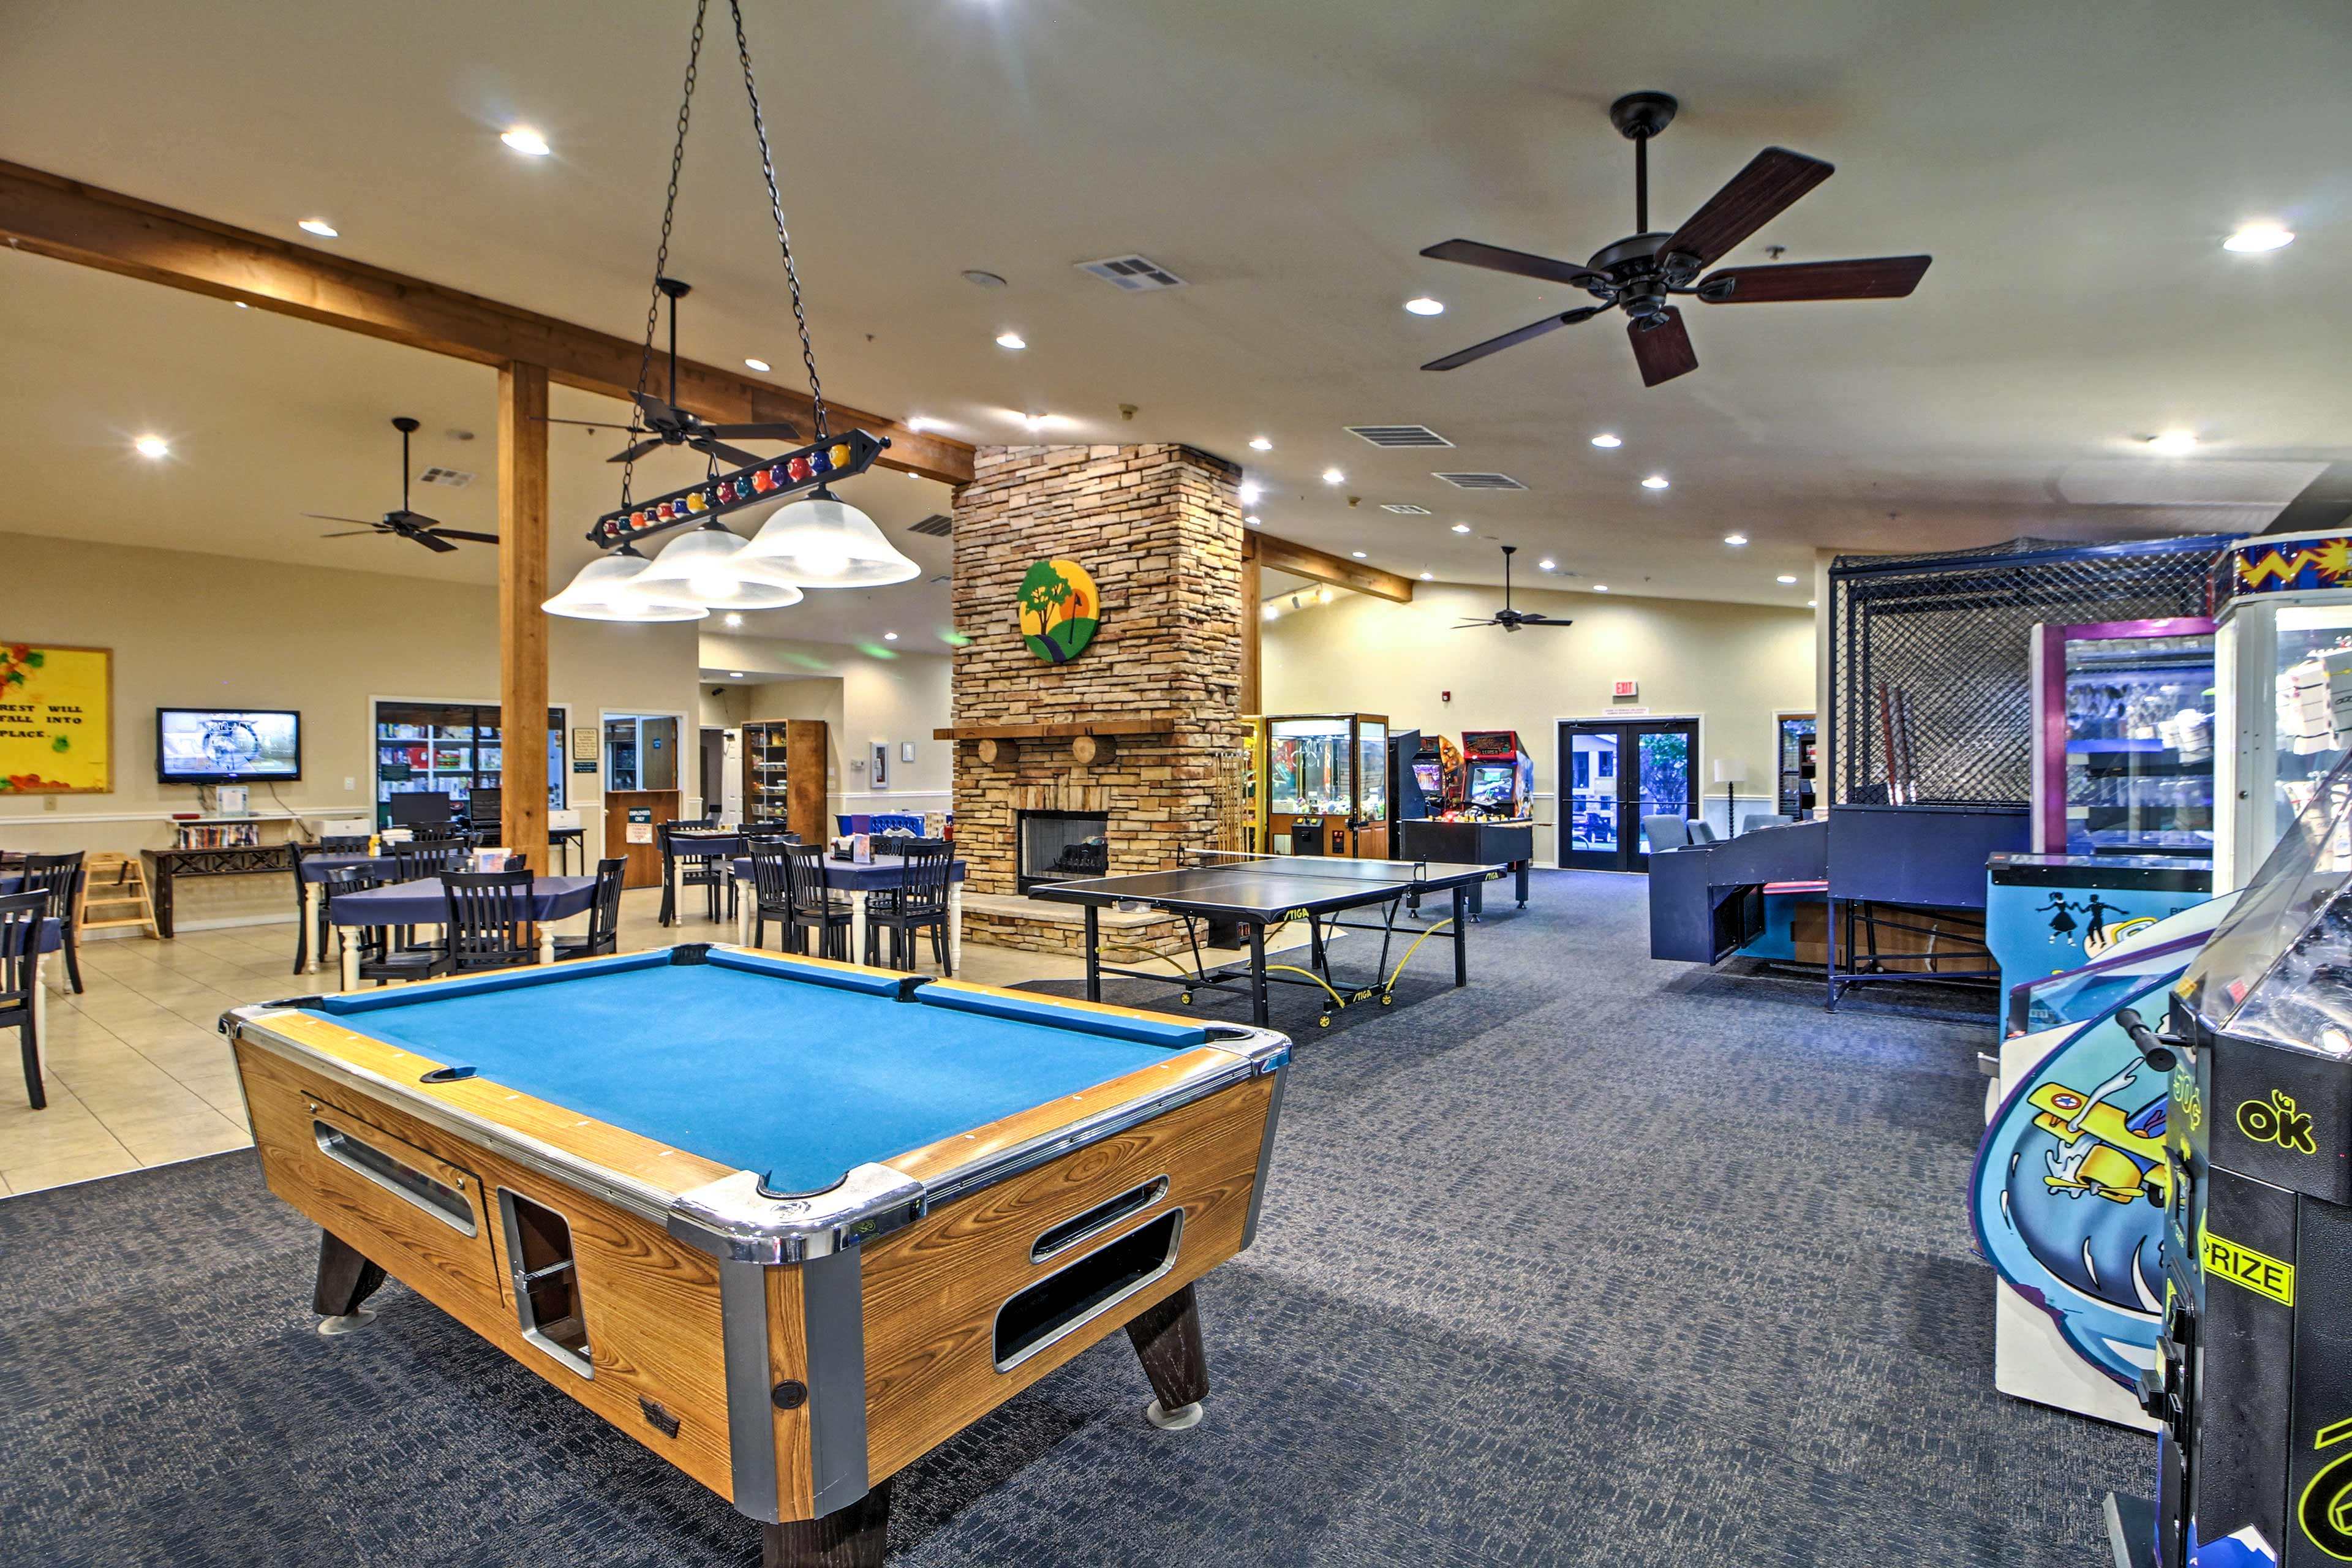 Kids will love the spacious arcade with games, a pool table, and ping pong table